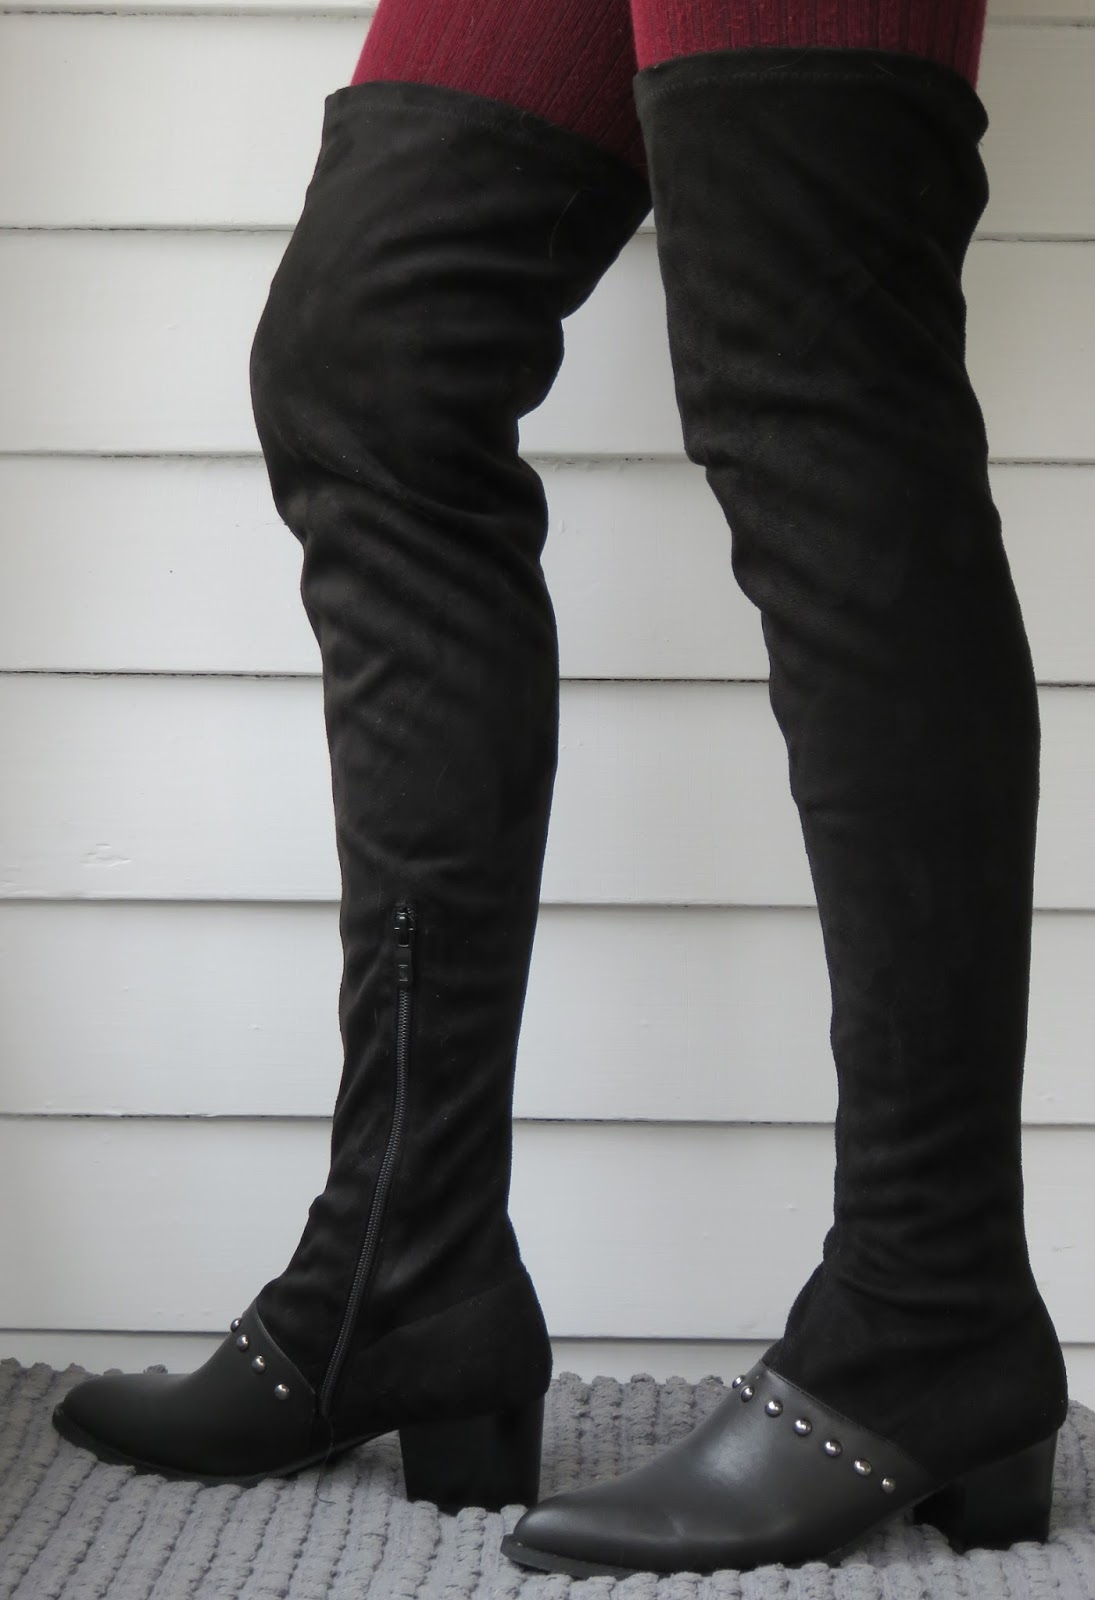 e48803d09d1 Howdy Slim! Riding Boots for Thin Calves  Pretty Little Thing ...